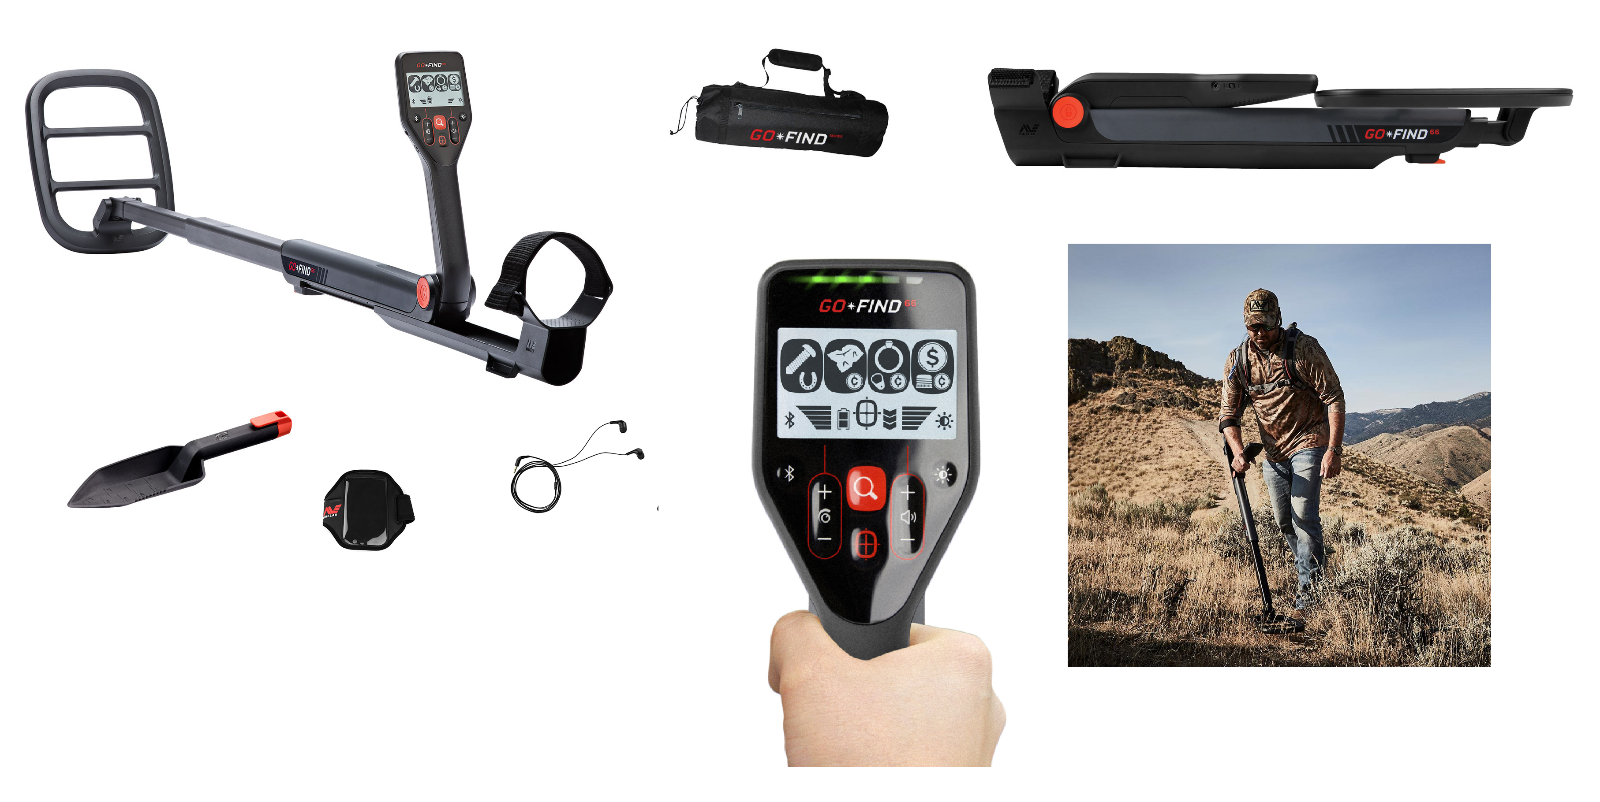 New Minelab Go Find 66 Metal Detector Includes Carry Bag Fun To Findcoins At The Beach Gofind Collapsible Waterproof Coil Easy Use Low Cost Power Treasure Hunting